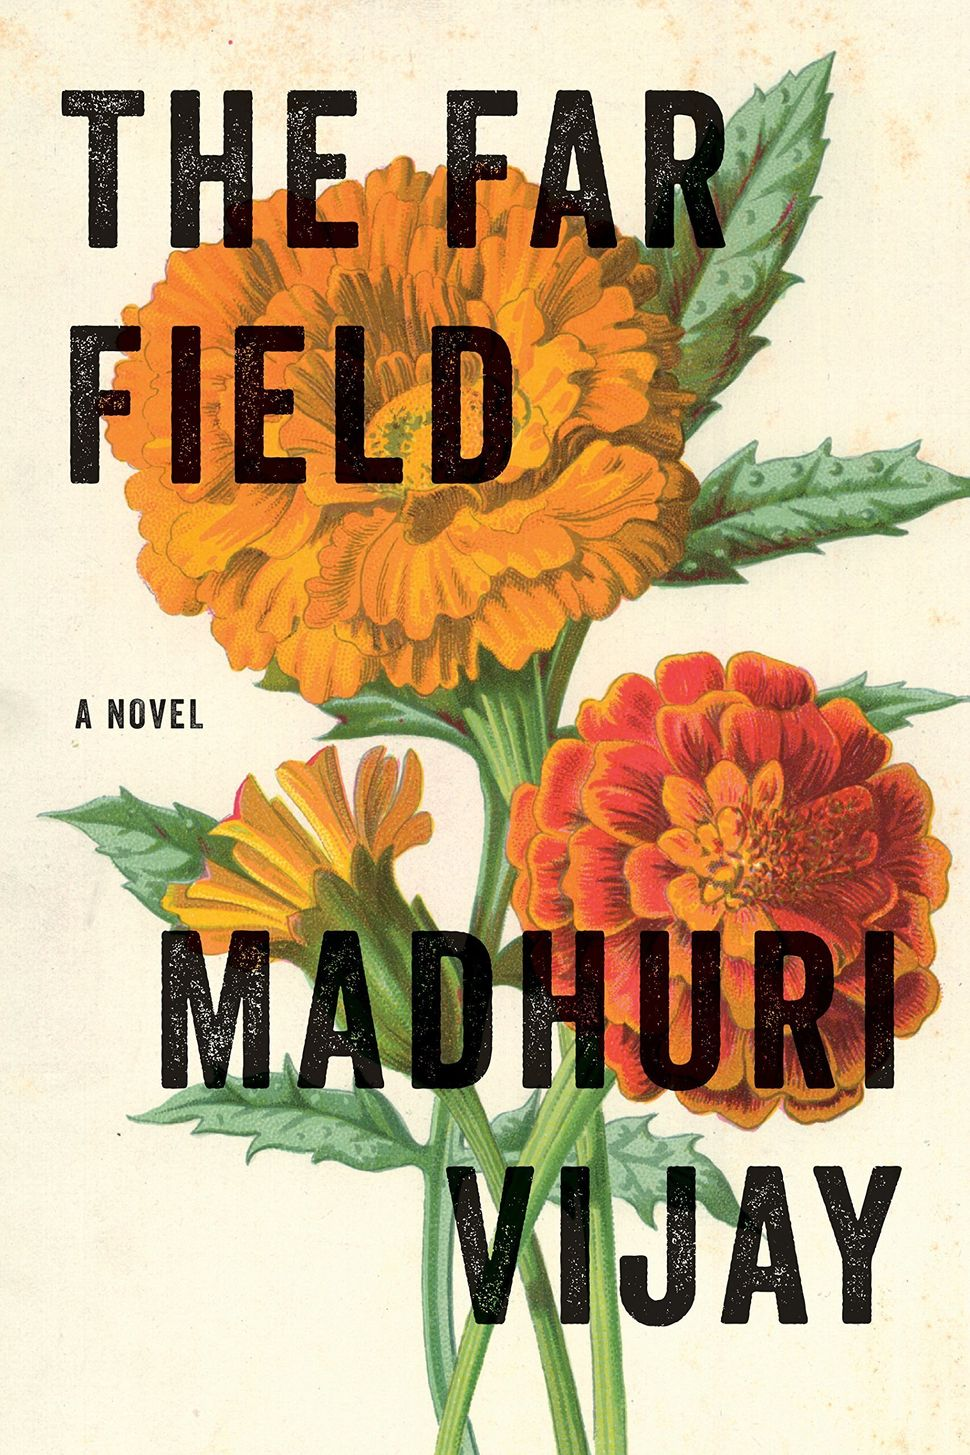 Madhuri Vijay's debut novel The Far Field